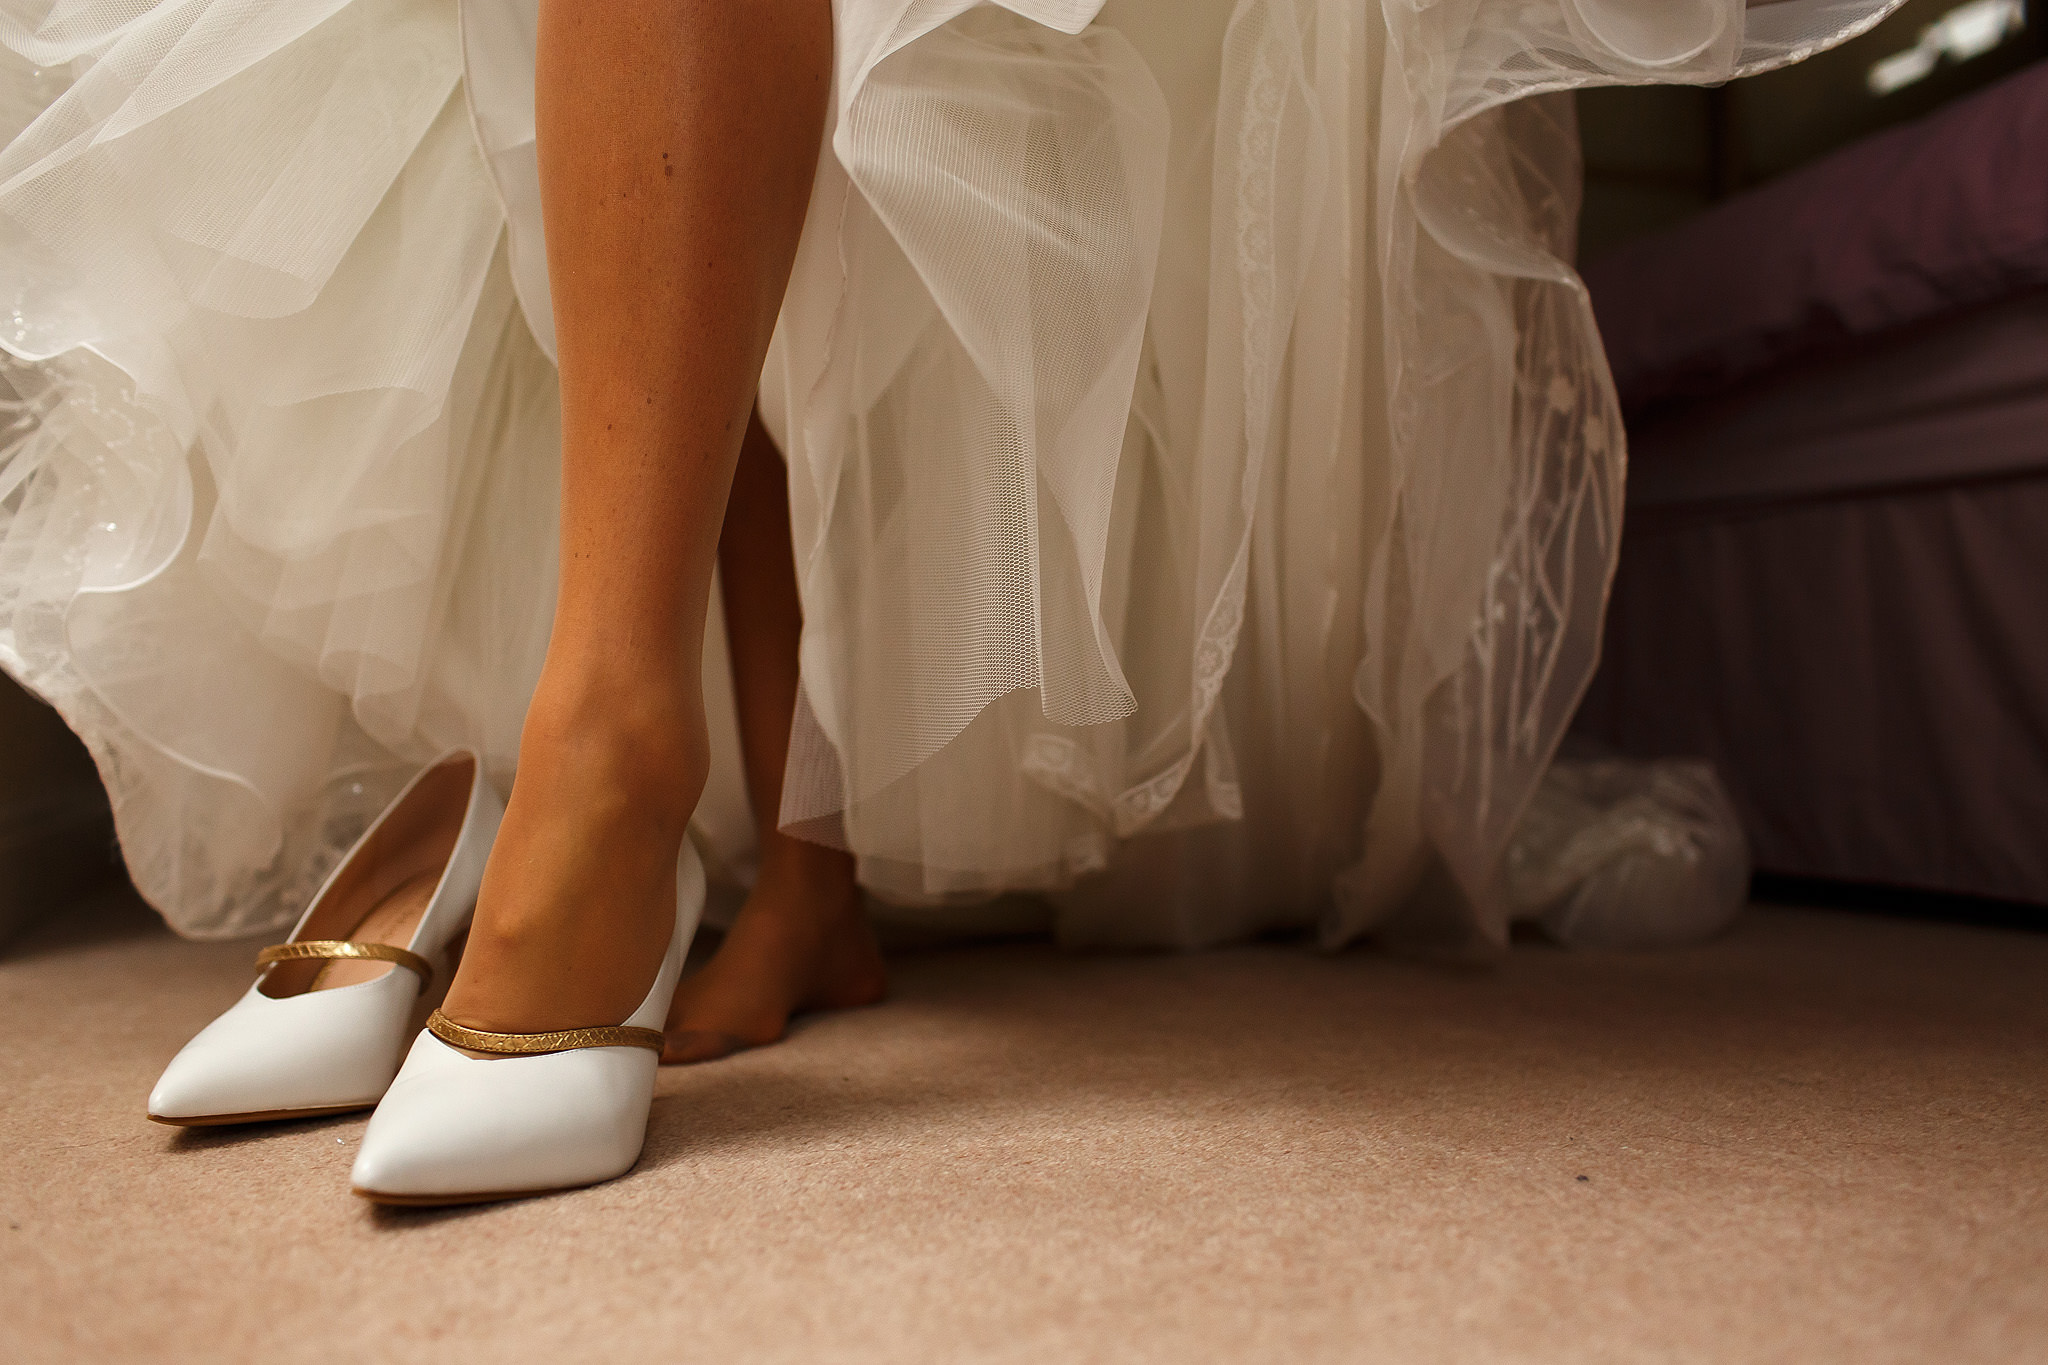 Bride with long legs stepping into her white wedding shoes with wedding dress falling behind